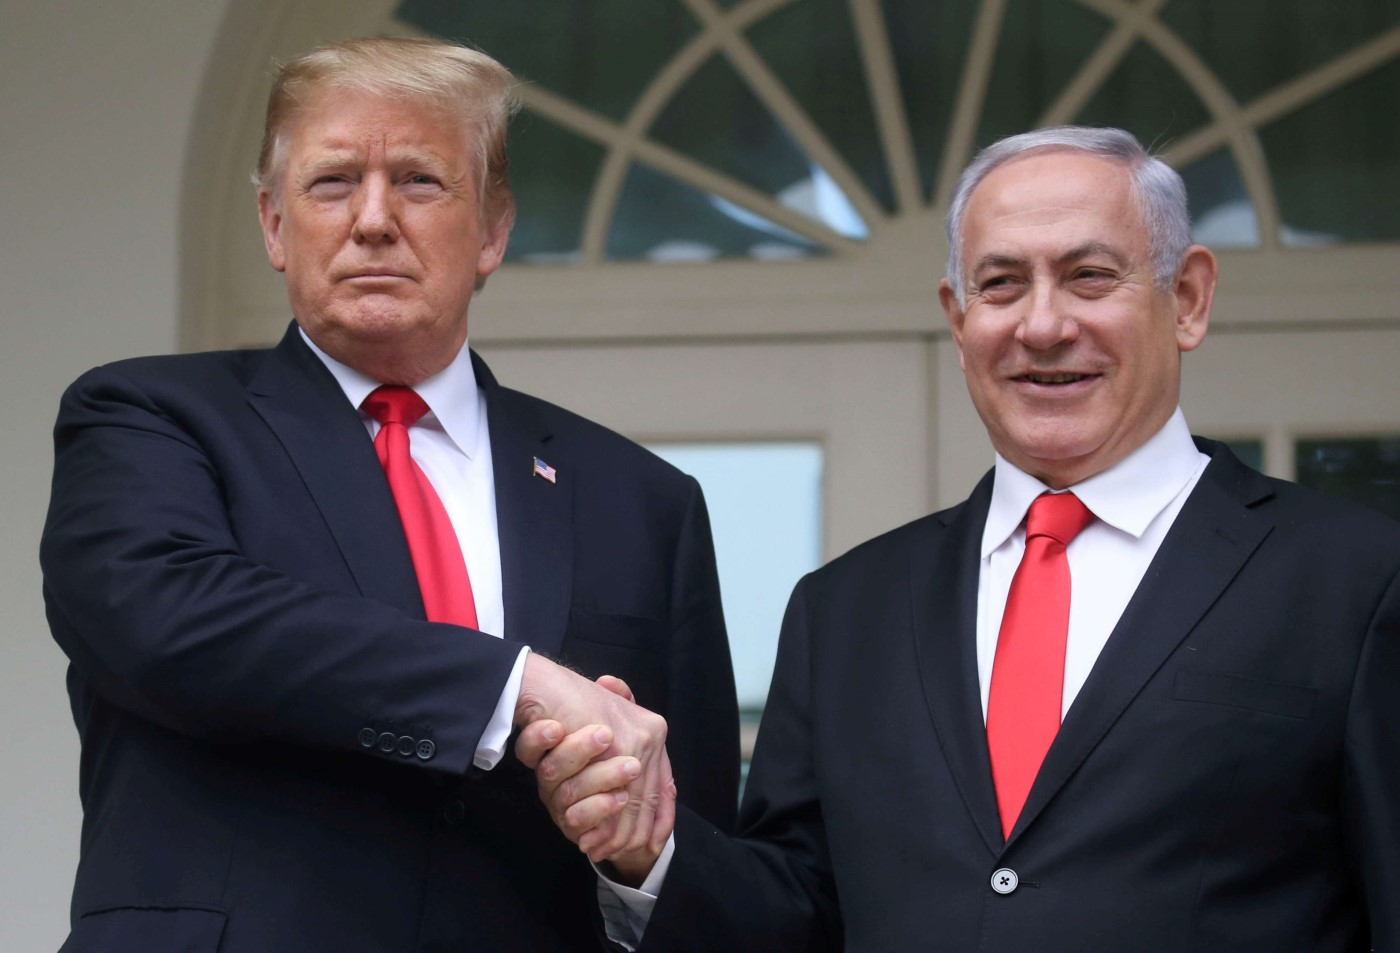 US President Donald Trump shakes hands with Israel's Prime Minister Benjamin Netanyahu as they pose on the West Wing colonnade in the Rose Garden at the White House in Washington, US, March 25, 2019. (Reuters)